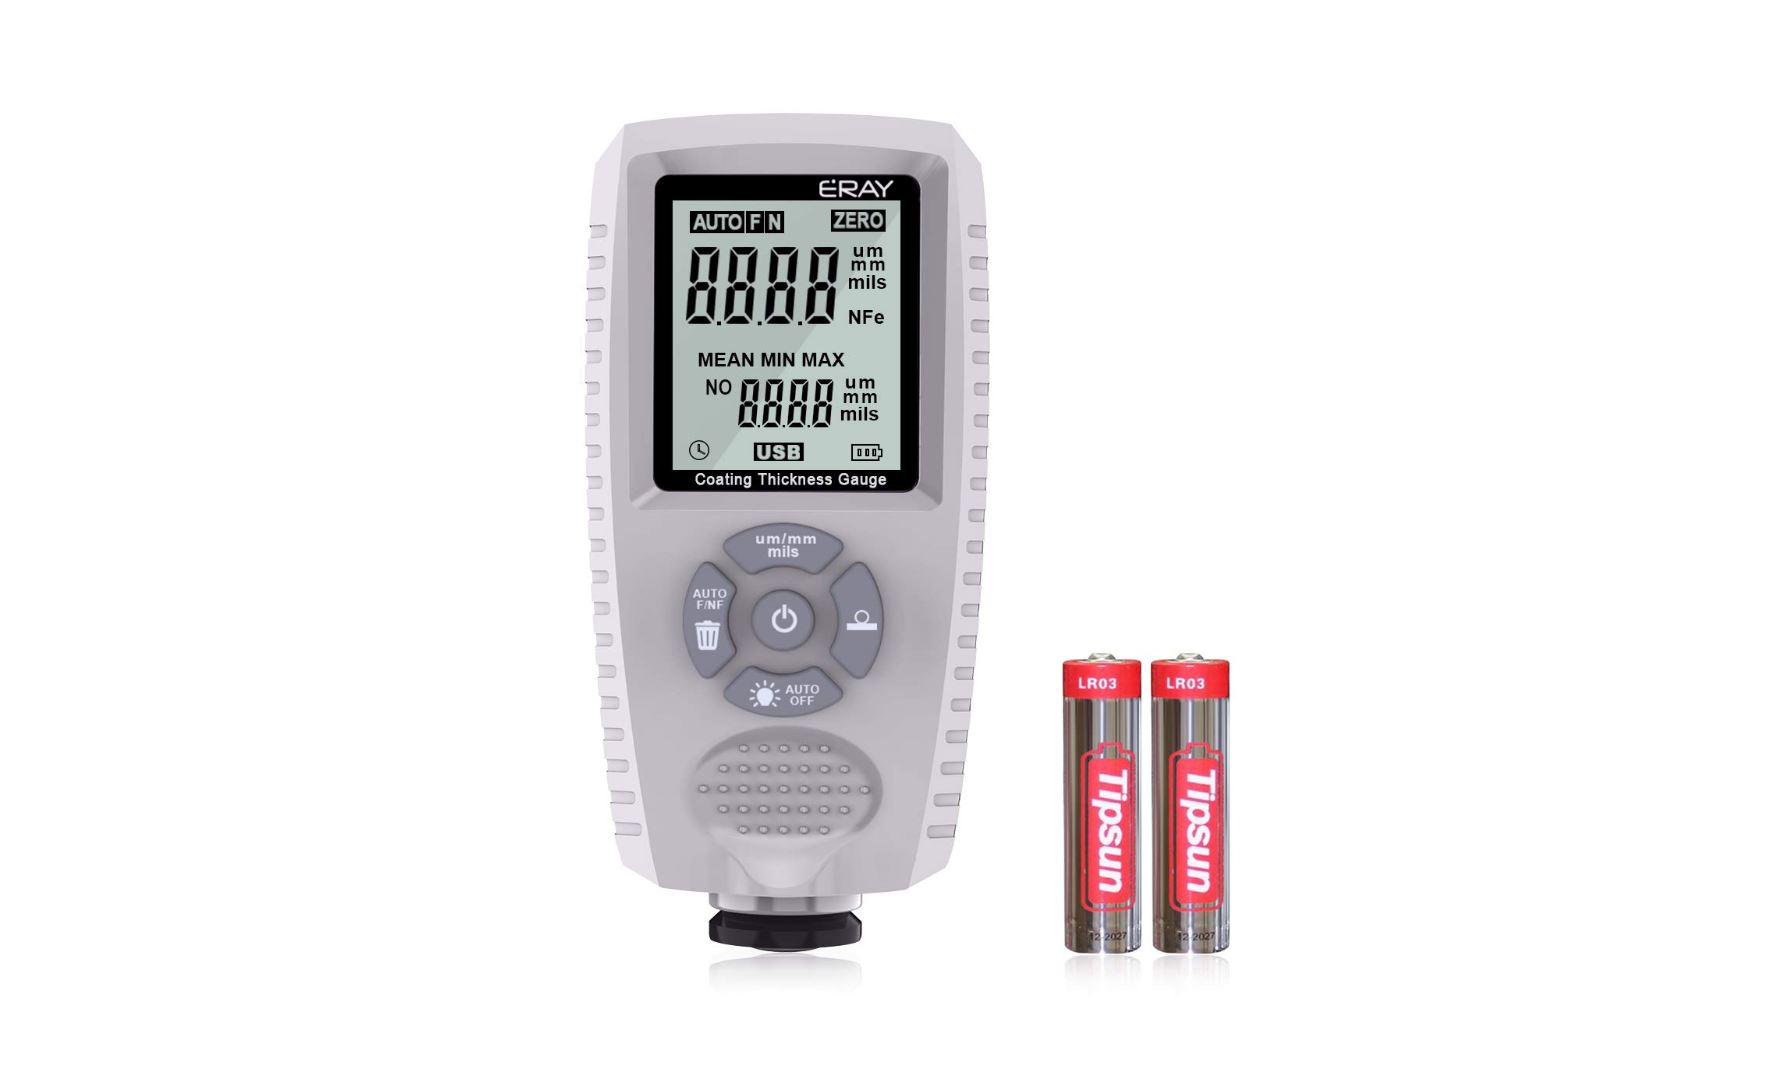 Paint Thickness GaugeBest Digital Meter for Automotive Coating Thickness T...